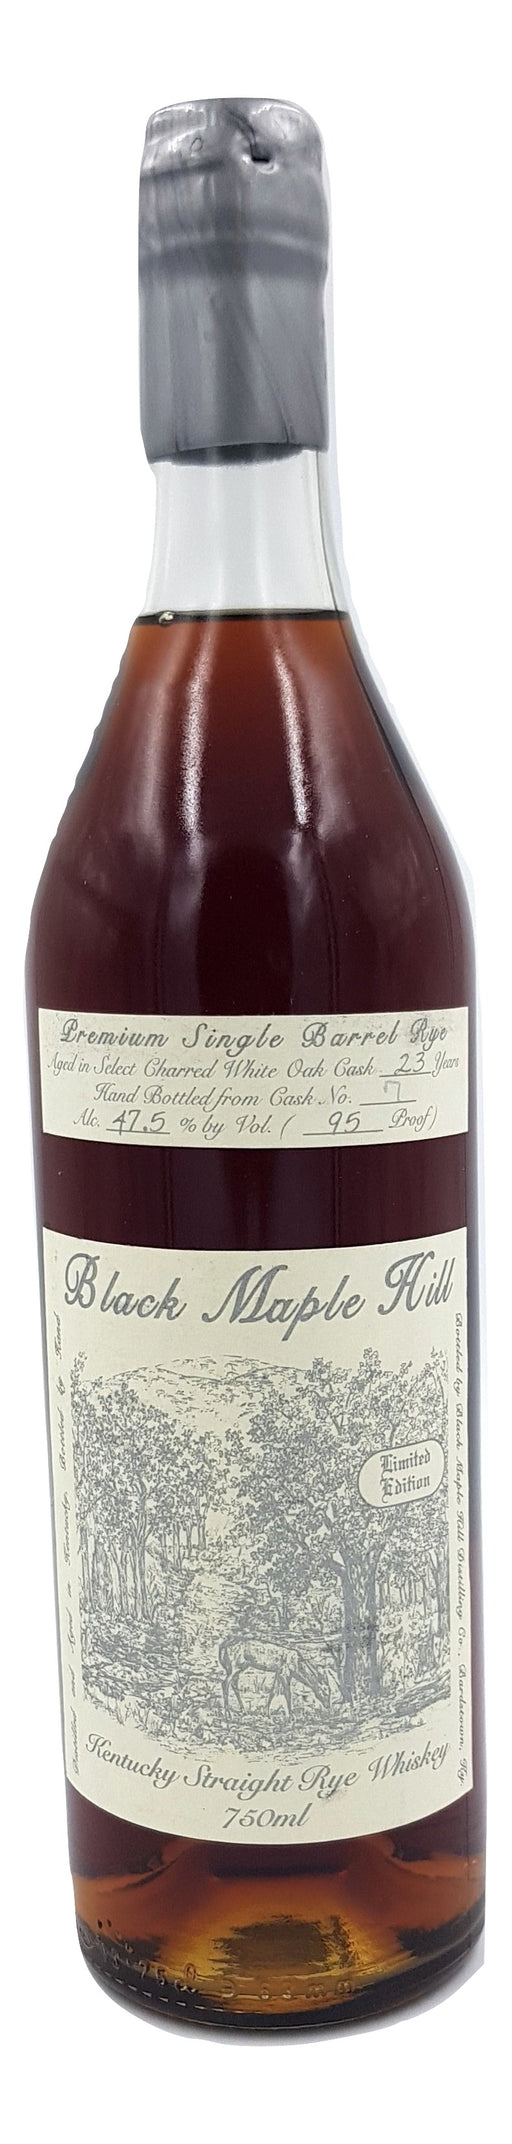 Black Maple Hill 23 Year Old Rye For Sale - NativeSpiritsOnline